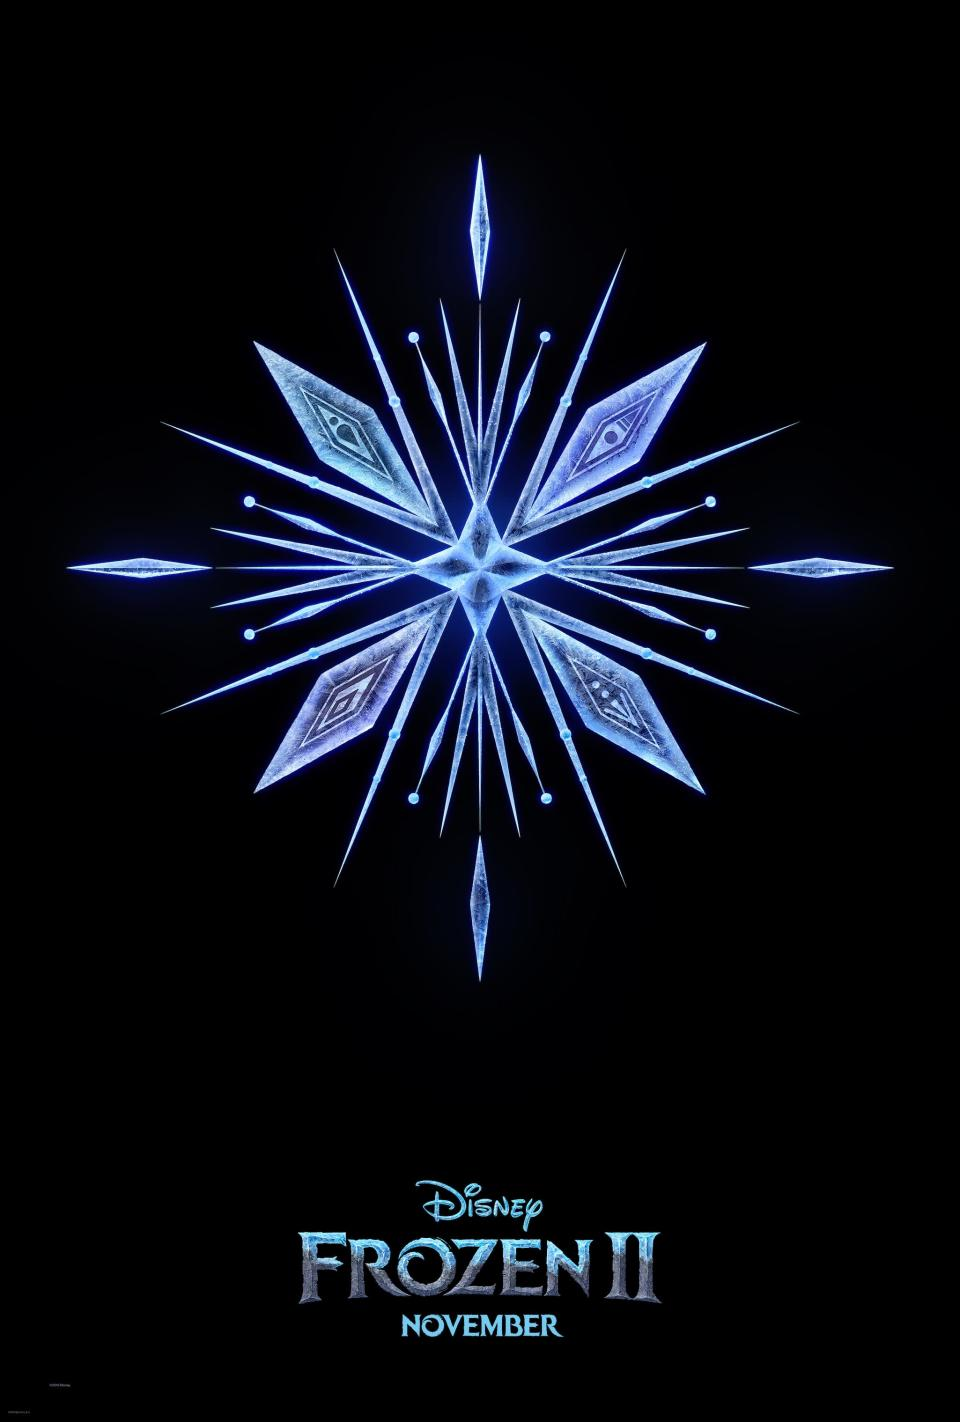 The first poster for <i>Frozen 2</i>. Look closely at the snowflake to see hidden patterns. (Disney)